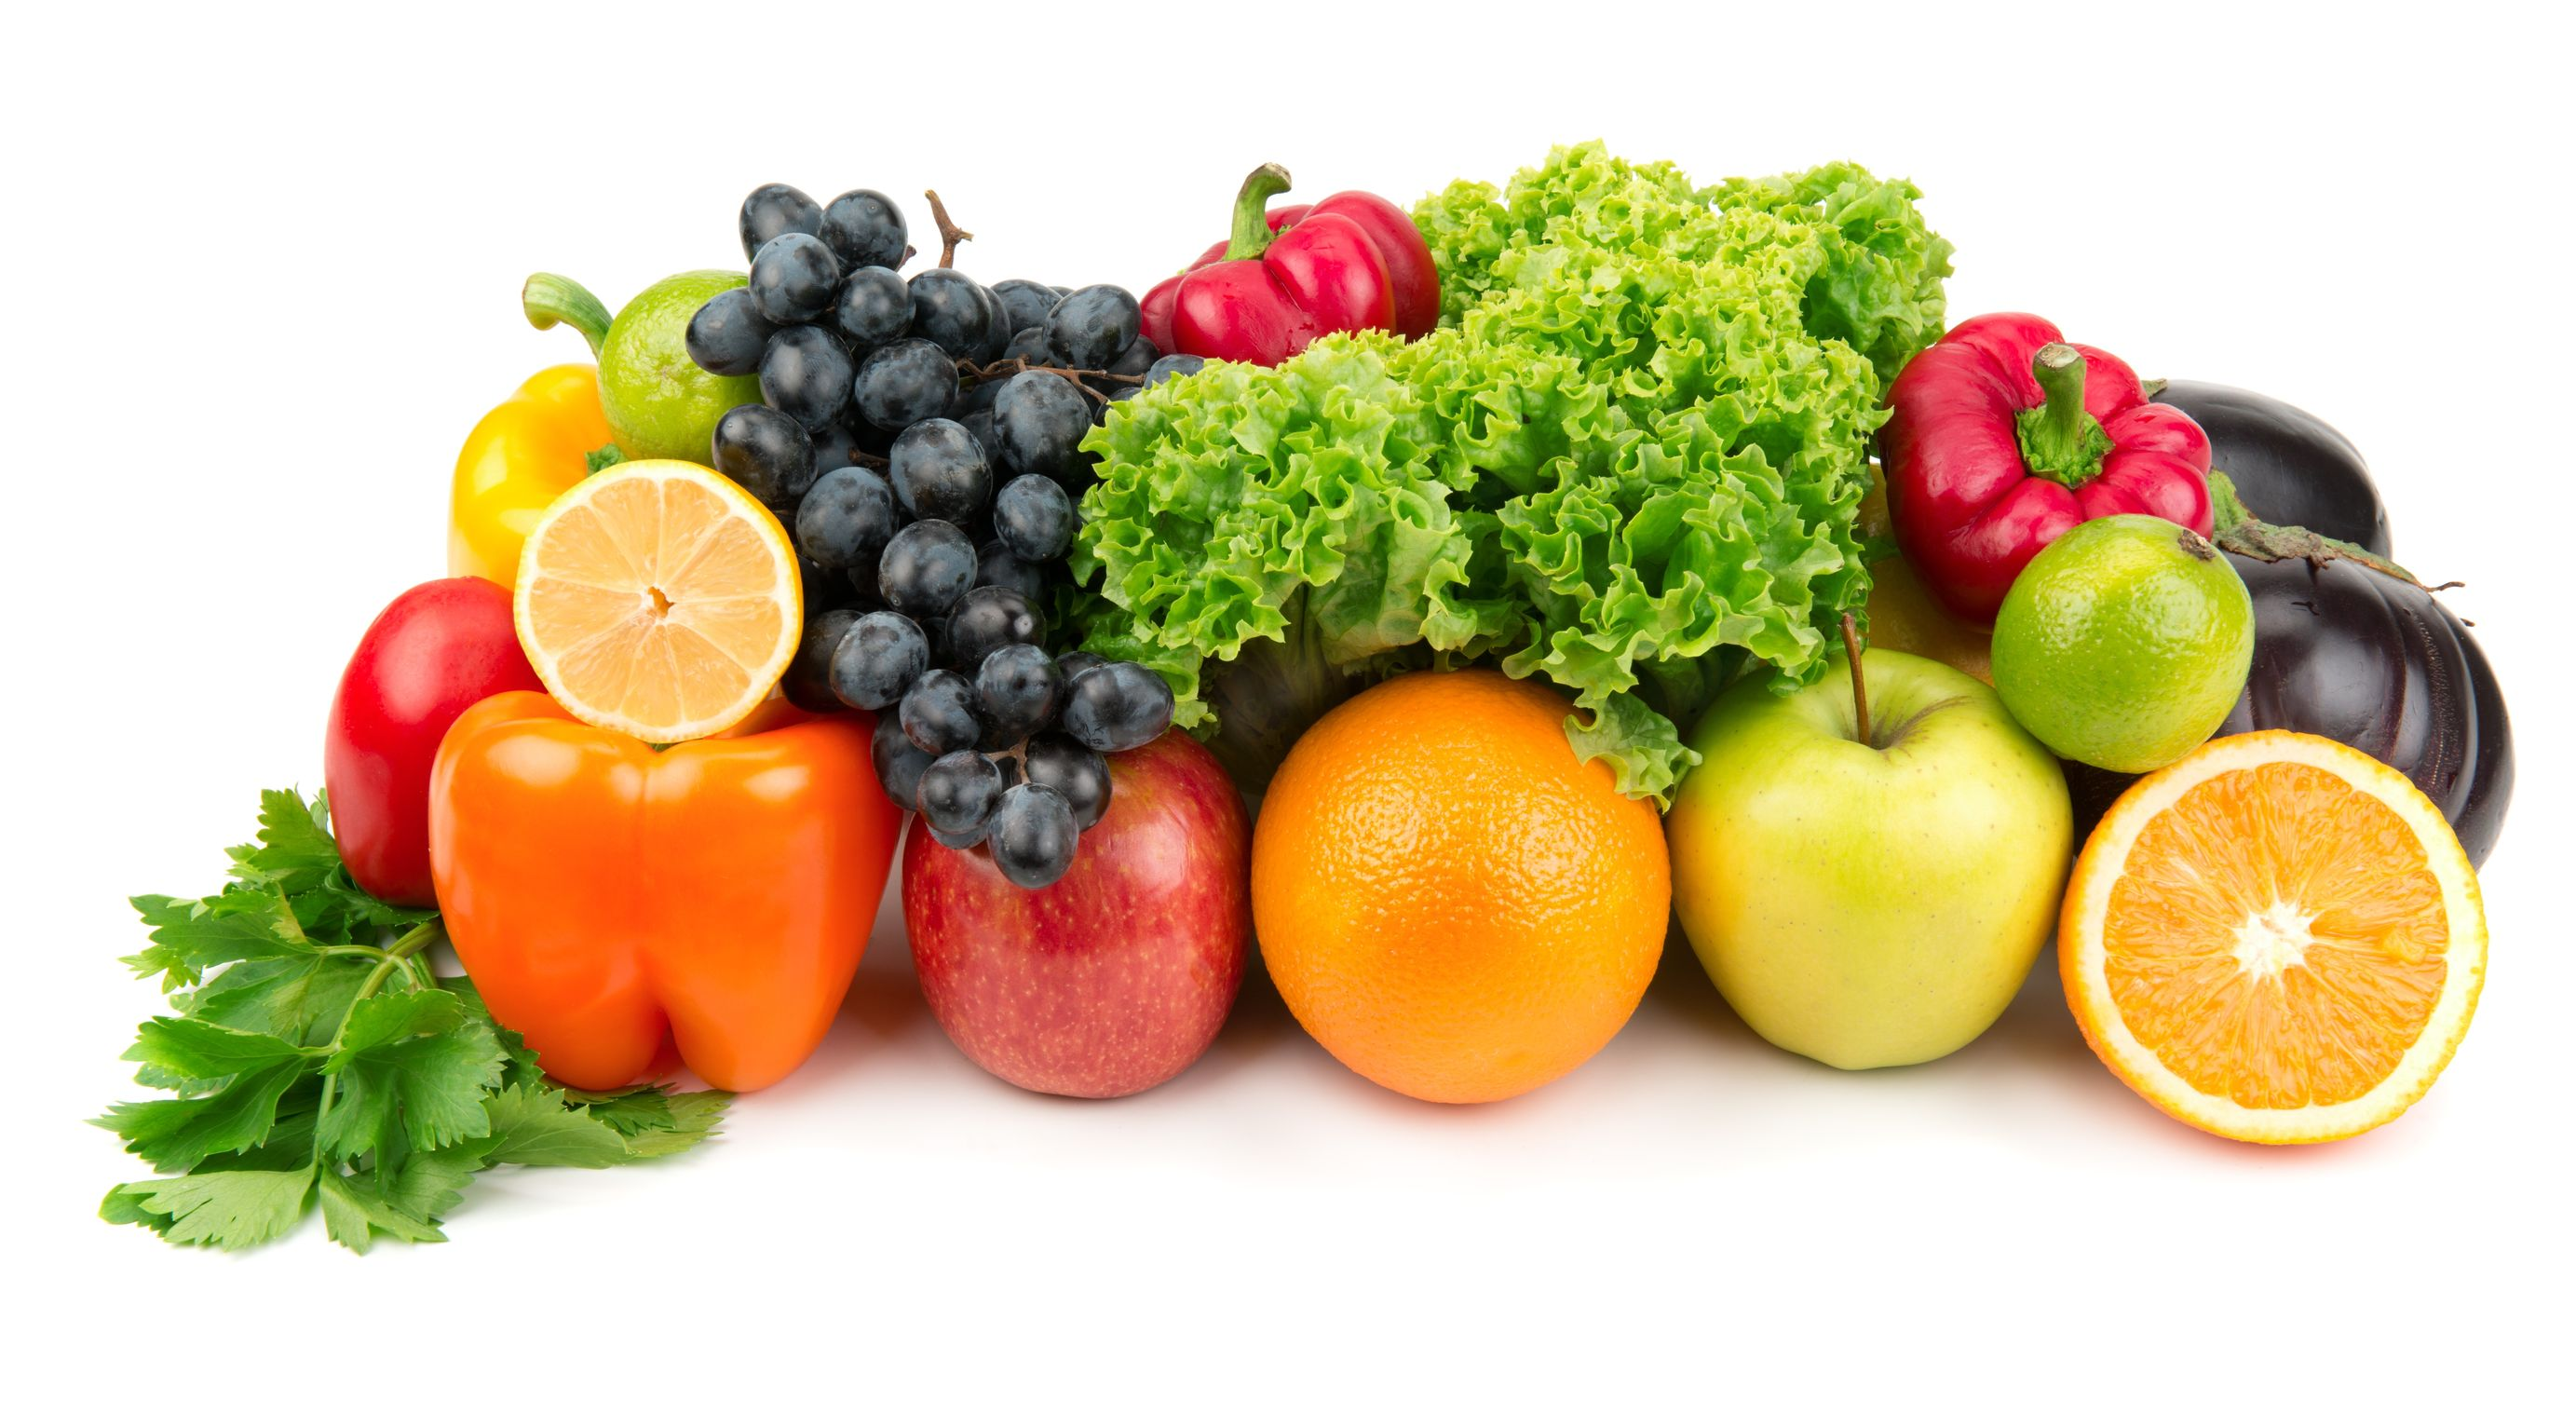 importance of vegetables A fact sheet that summarizes the results of studies about cruciferous vegetables and cancer includes a list of cruciferous vegetables and dietary recommendations.